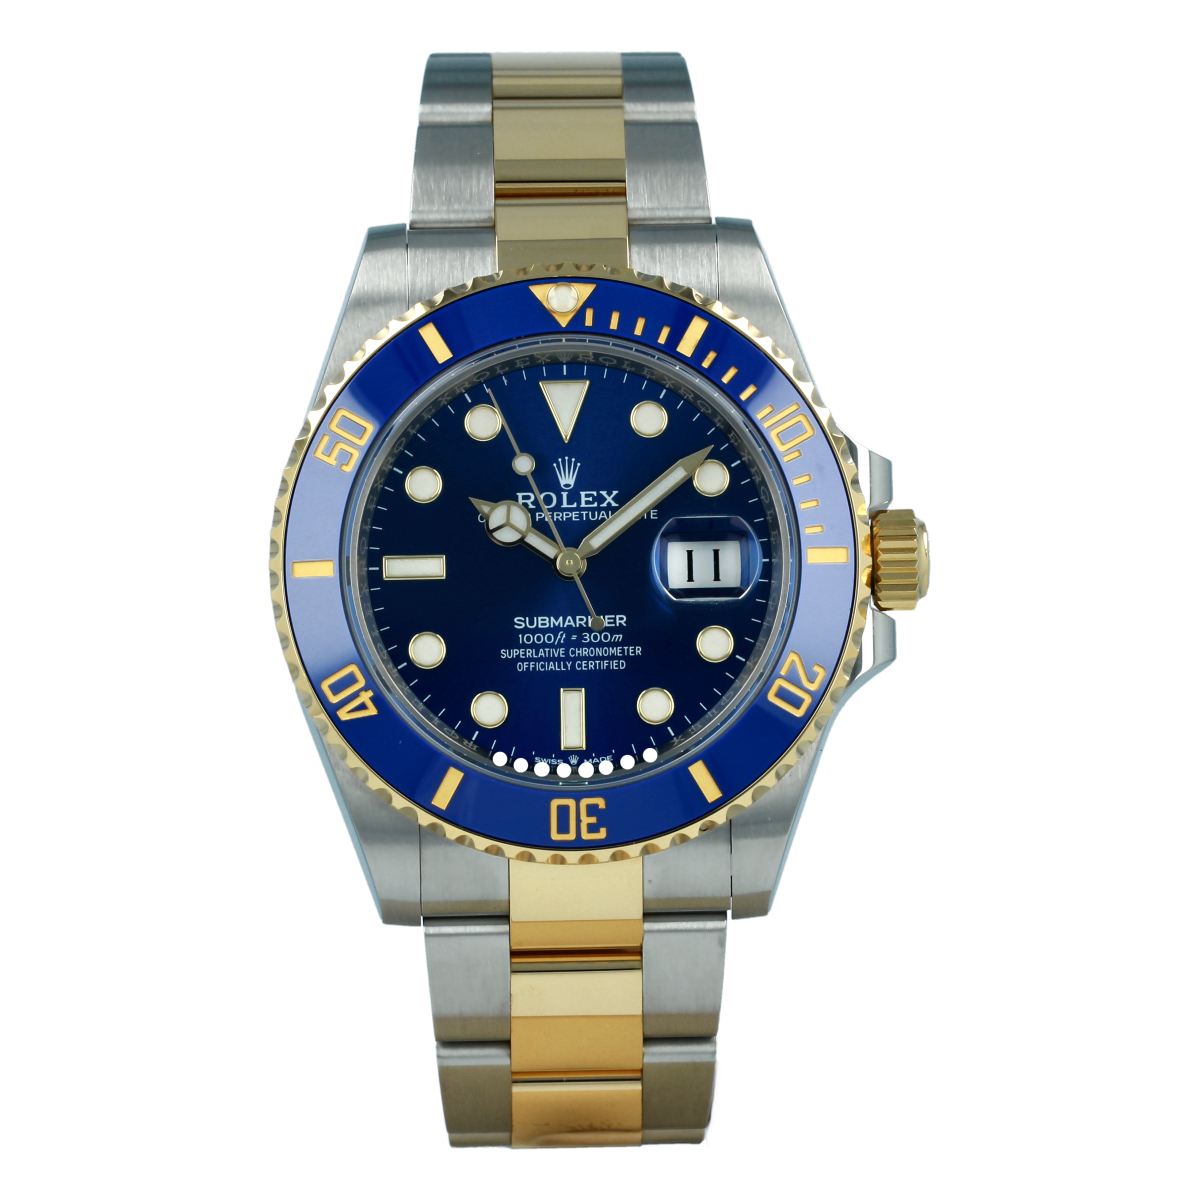 Rolex Submariner Date 126613LB Steel and Yellow Gold *New Model* | Buy pre-owned Rolex watch